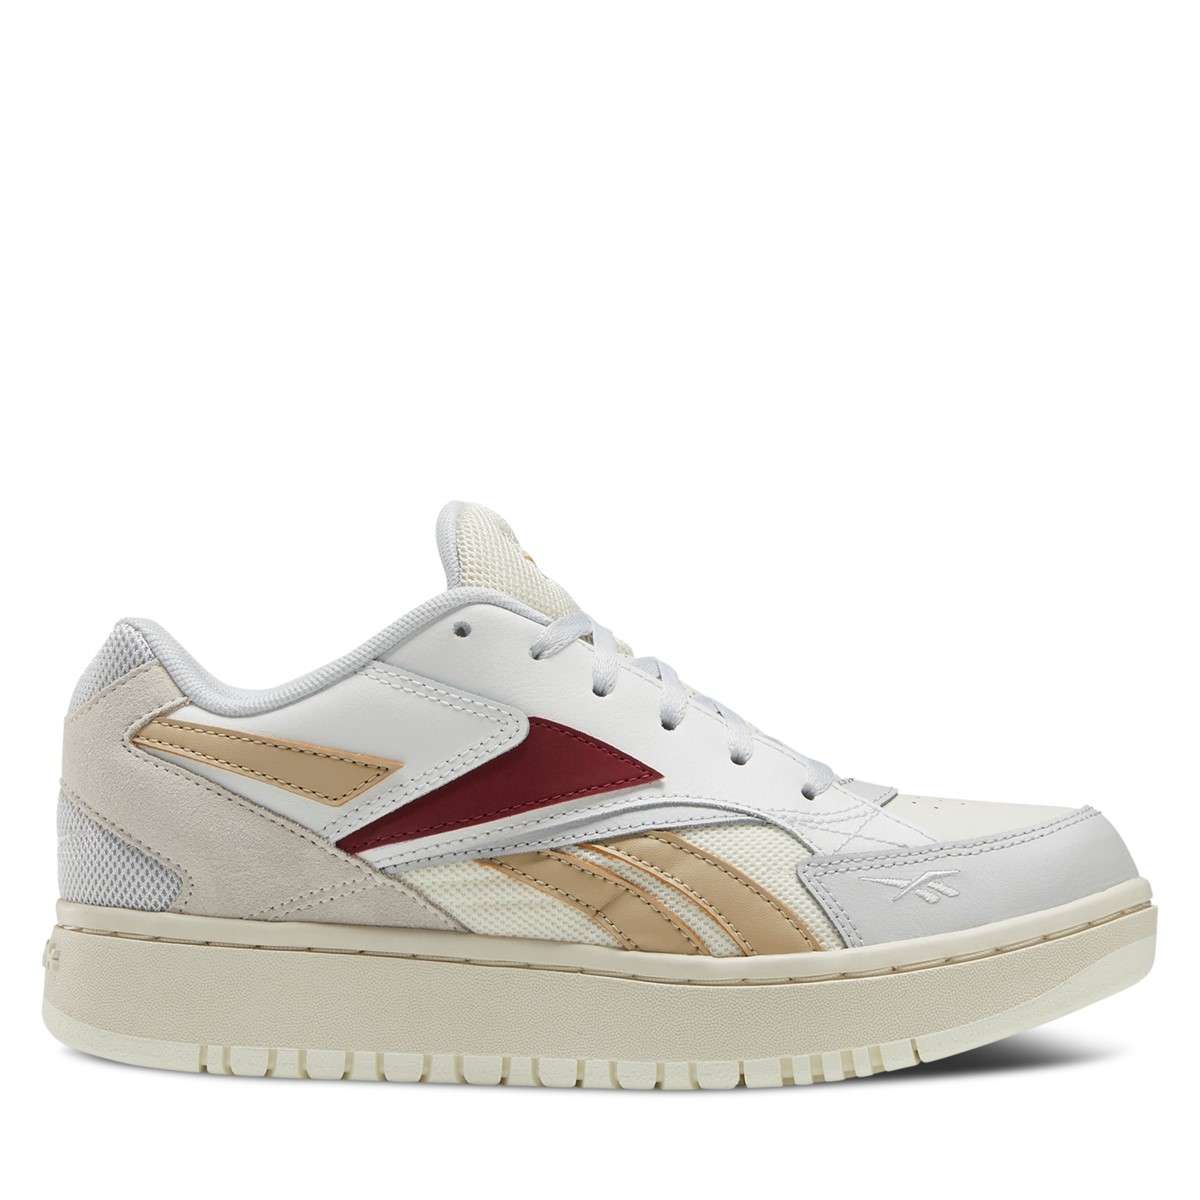 Women's Court Double Mix Sneakers in Off-White